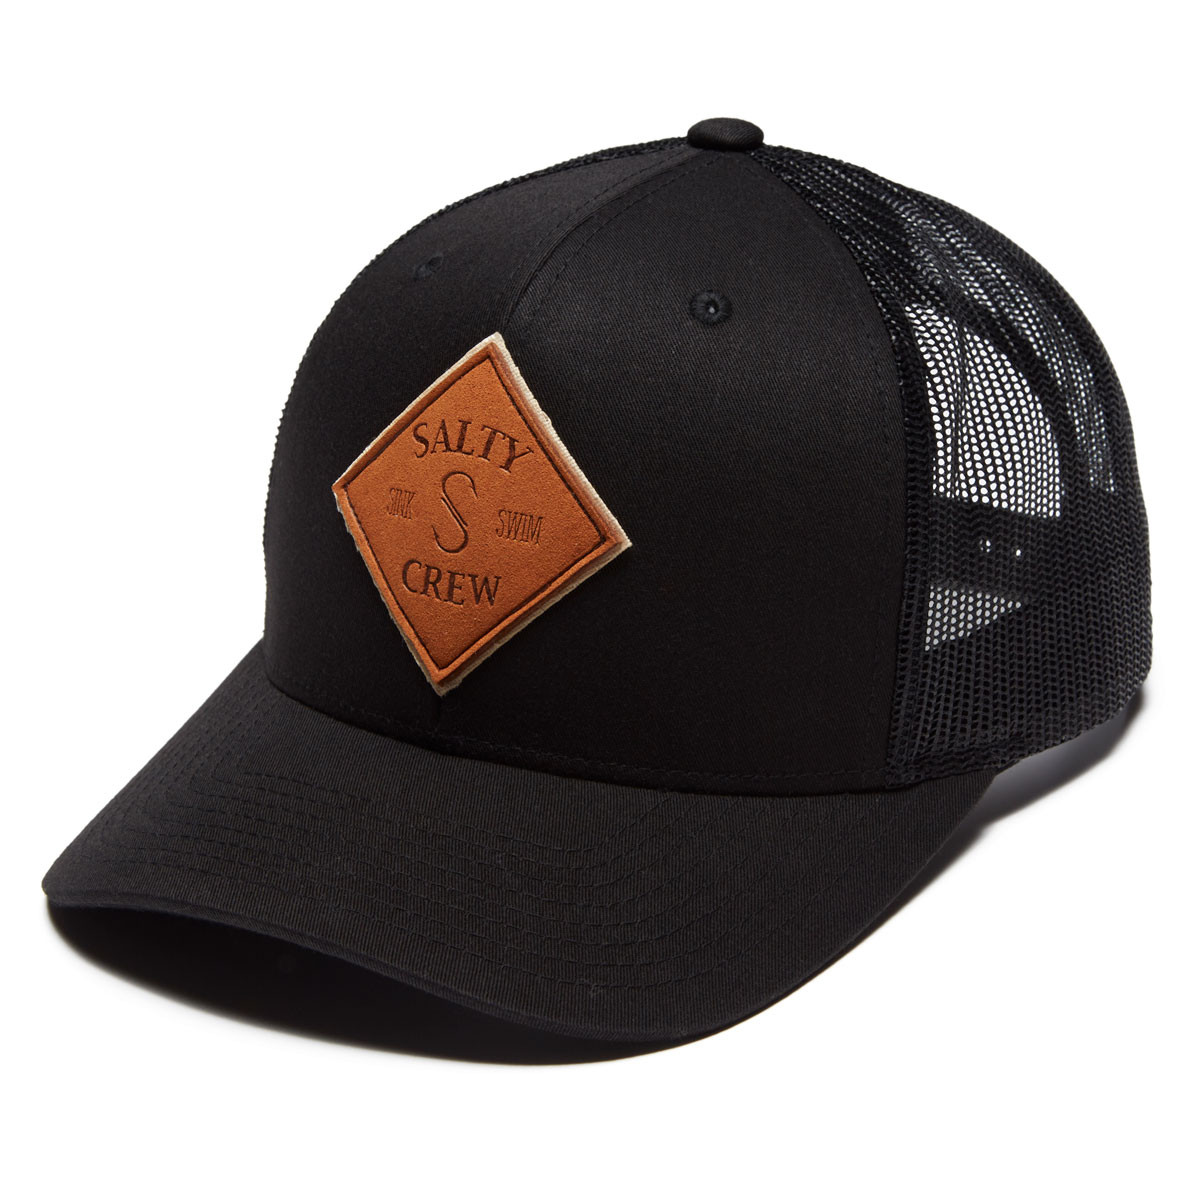 1310a354 Salty Crew Tippet Leather Retro Trucker Hat - Black